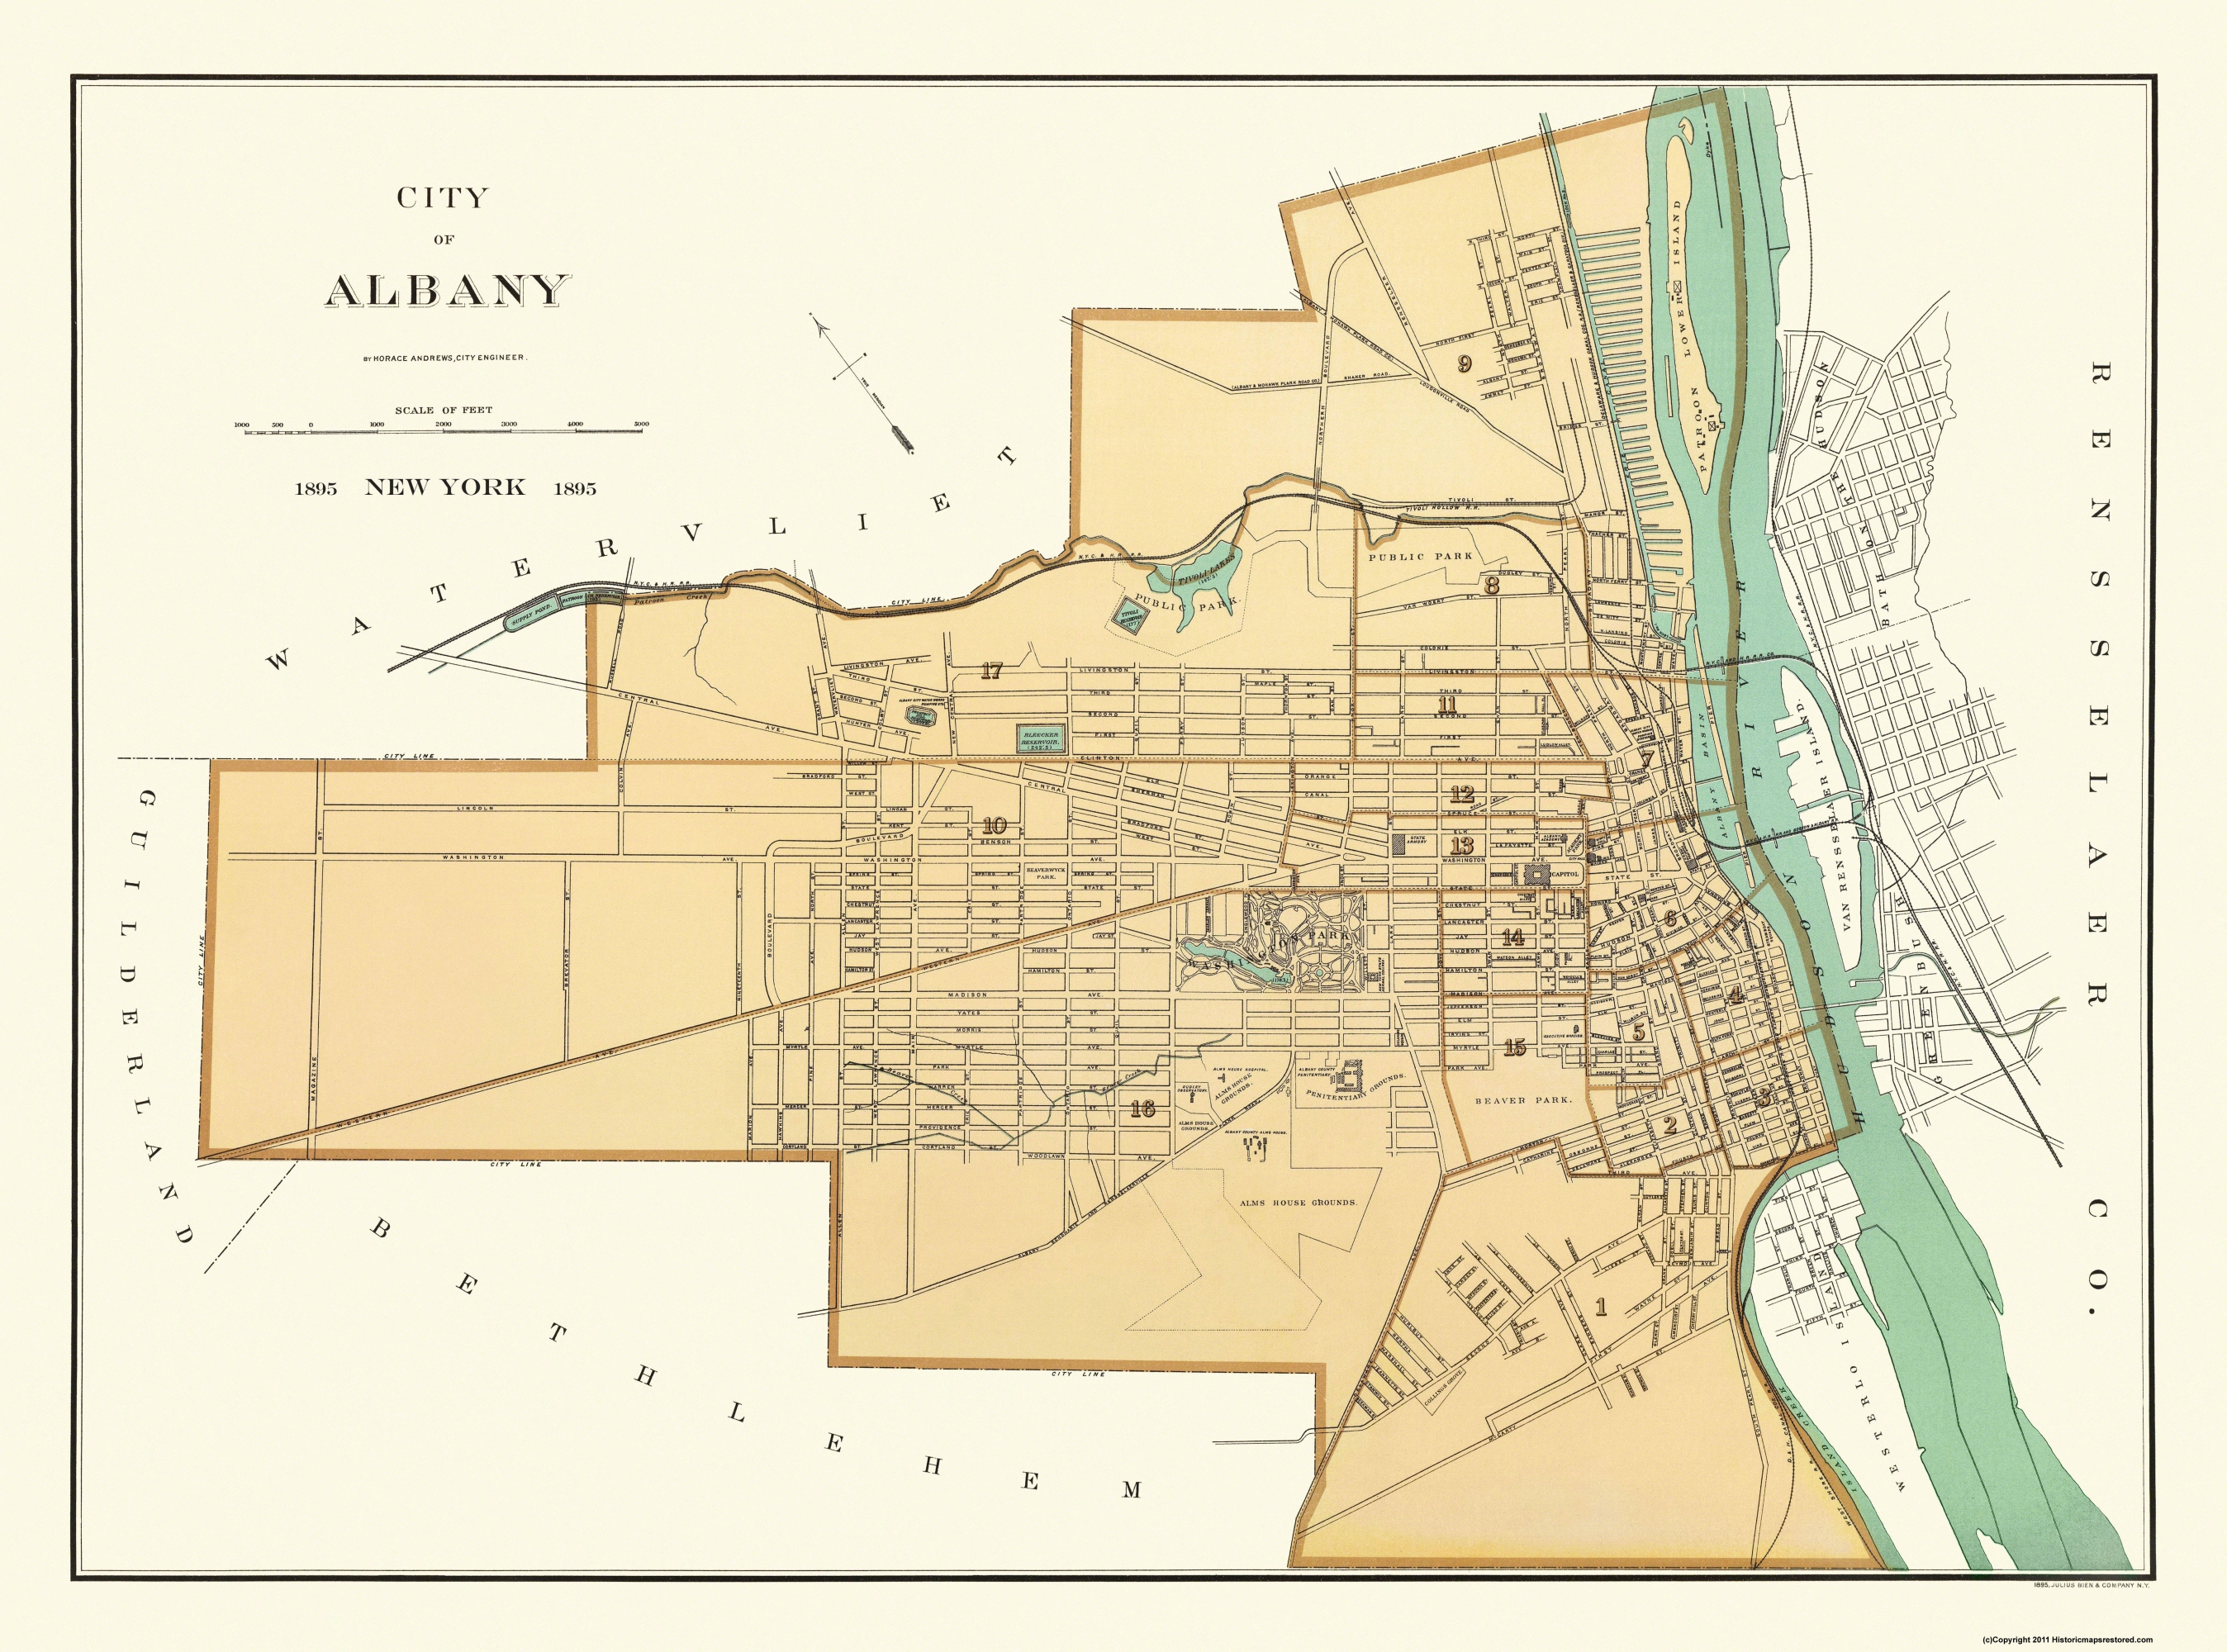 Albany New York - Andrews 1895 - 31 x 23 on map of crabtree, map of foxborough, map of hubbard, map of marylhurst university, map of south west western australia, map of glen echo, map of oregon, map of crandall, map of girard, map of spencerport, map of browns island, map of buffalo, map of brookings, map of new york state, map of crane, map of otto, map of dormansville, map of woodbourne, map of new york city, map of georgia,